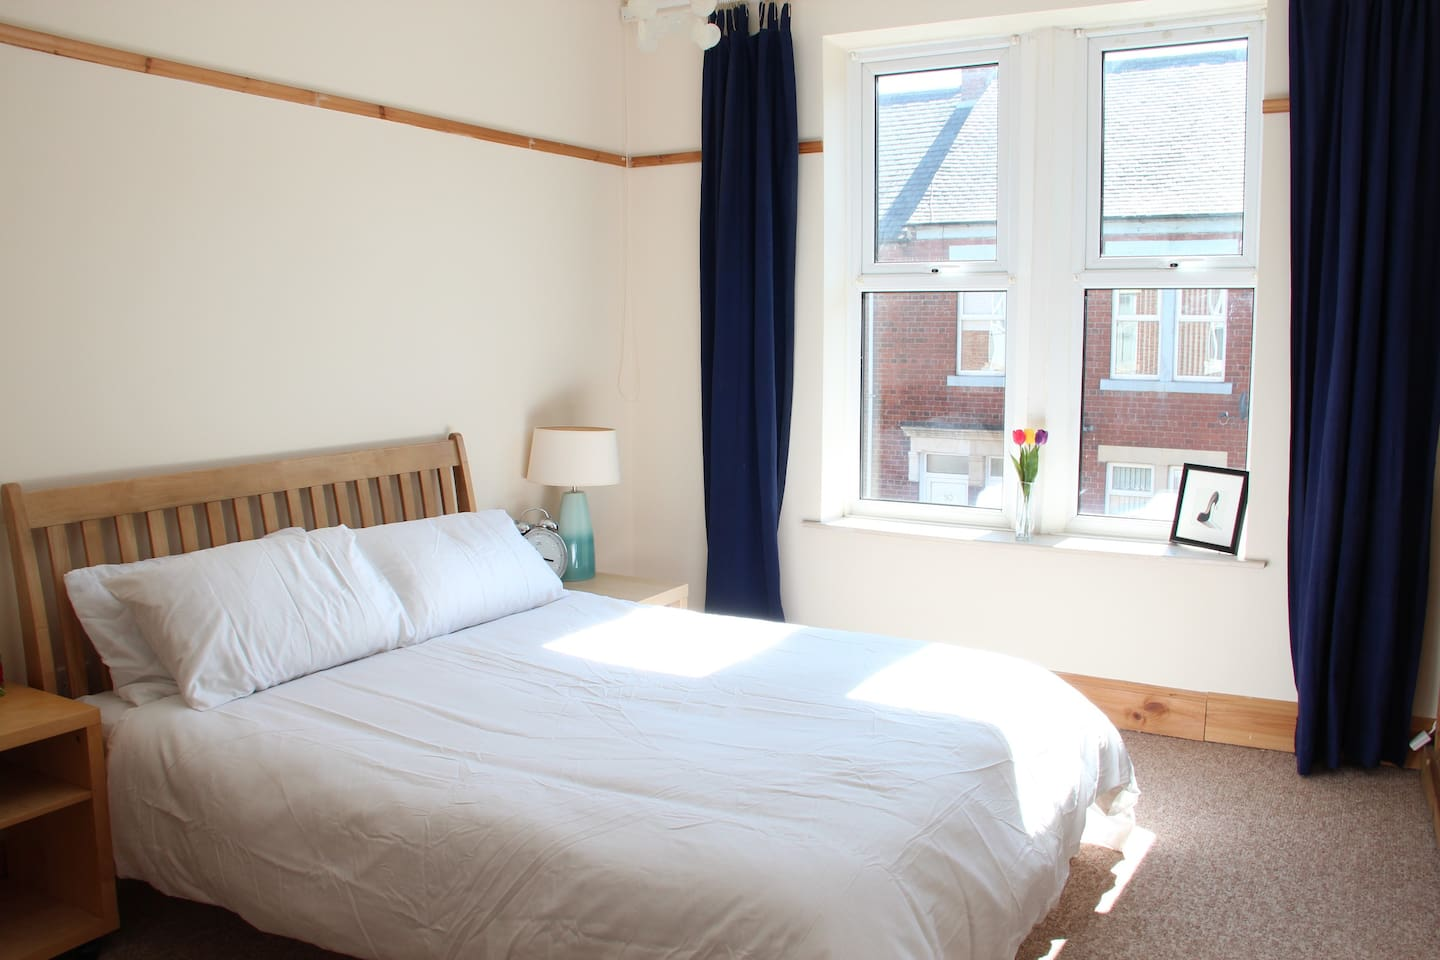 Main bedroom - full of light, extremely quiet and comfortable